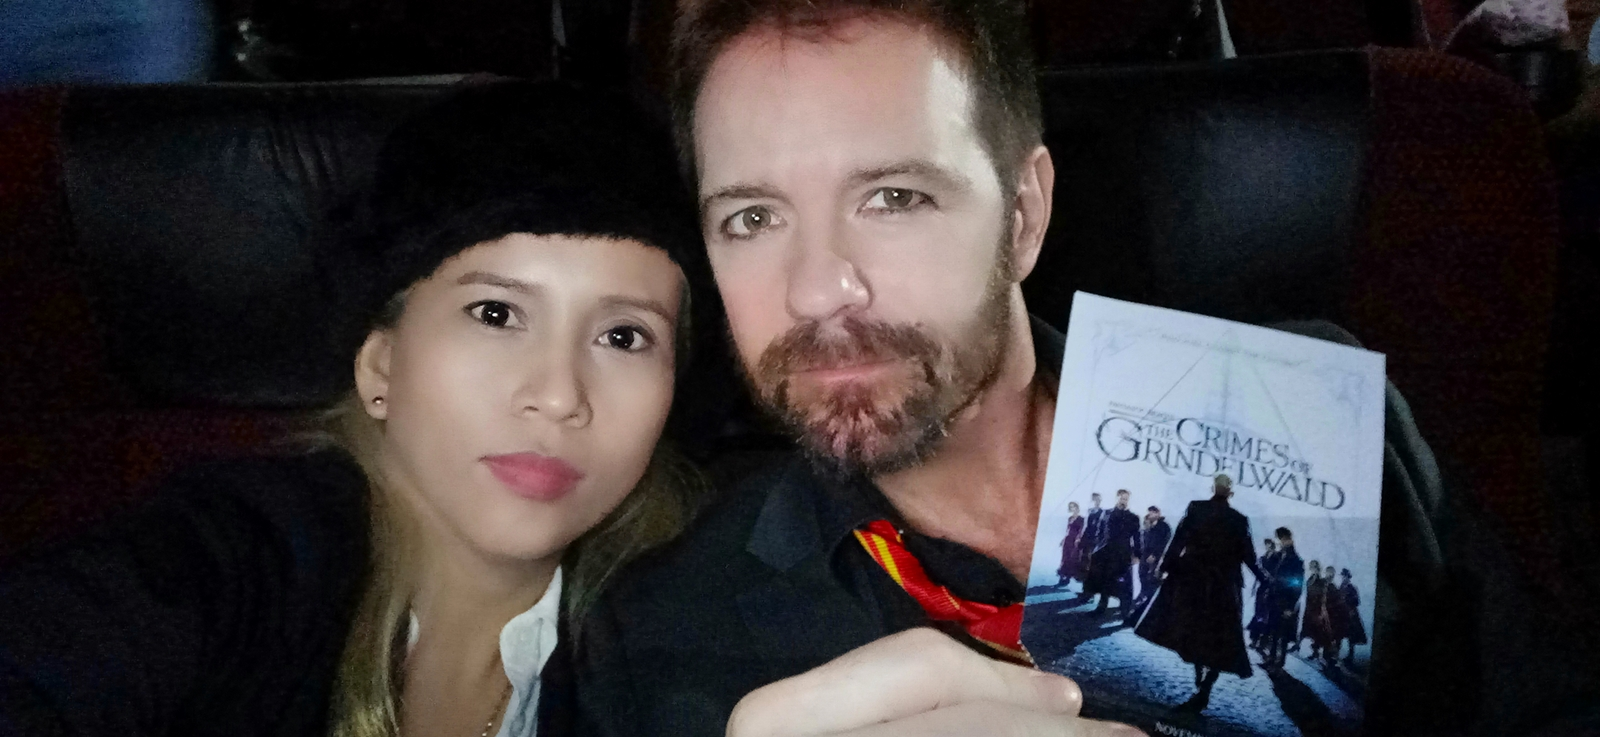 Fantastic Beast Crimes of Grindelwald review Earth Rullan and Marcus